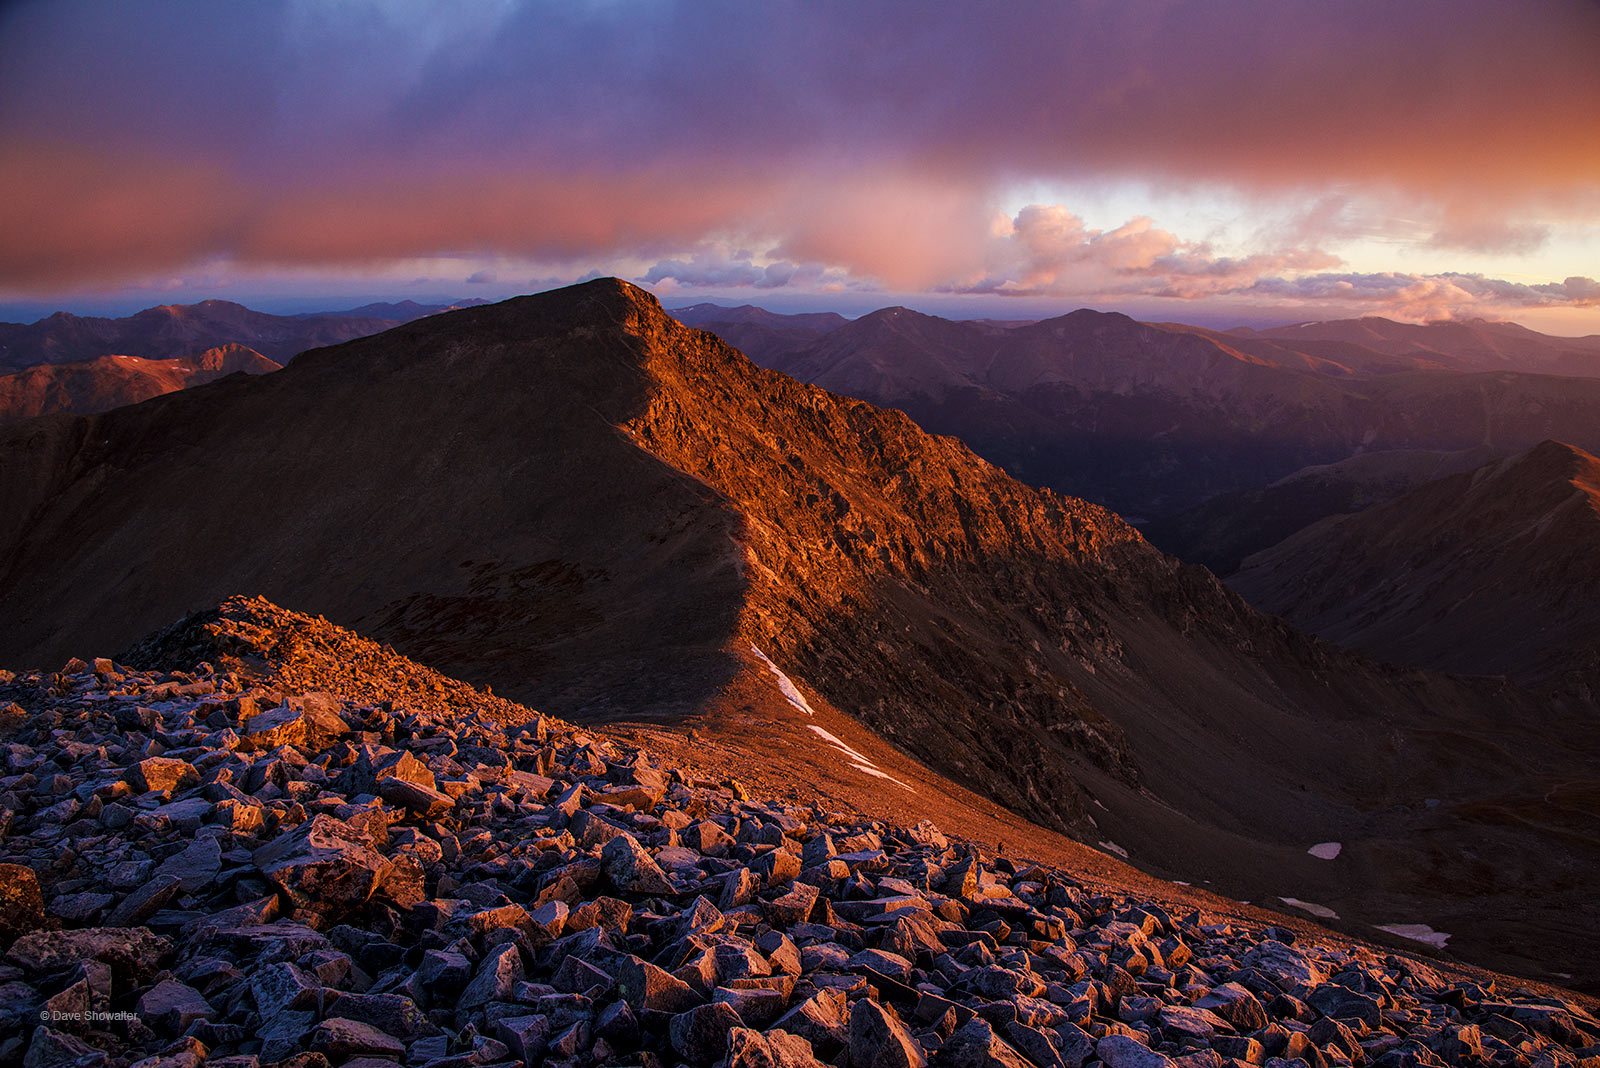 An alpine start around 3:00 a.m. and a steady climb in darkness led us to the summit of Grays Peak (14,267'), where sunrise illuminated...